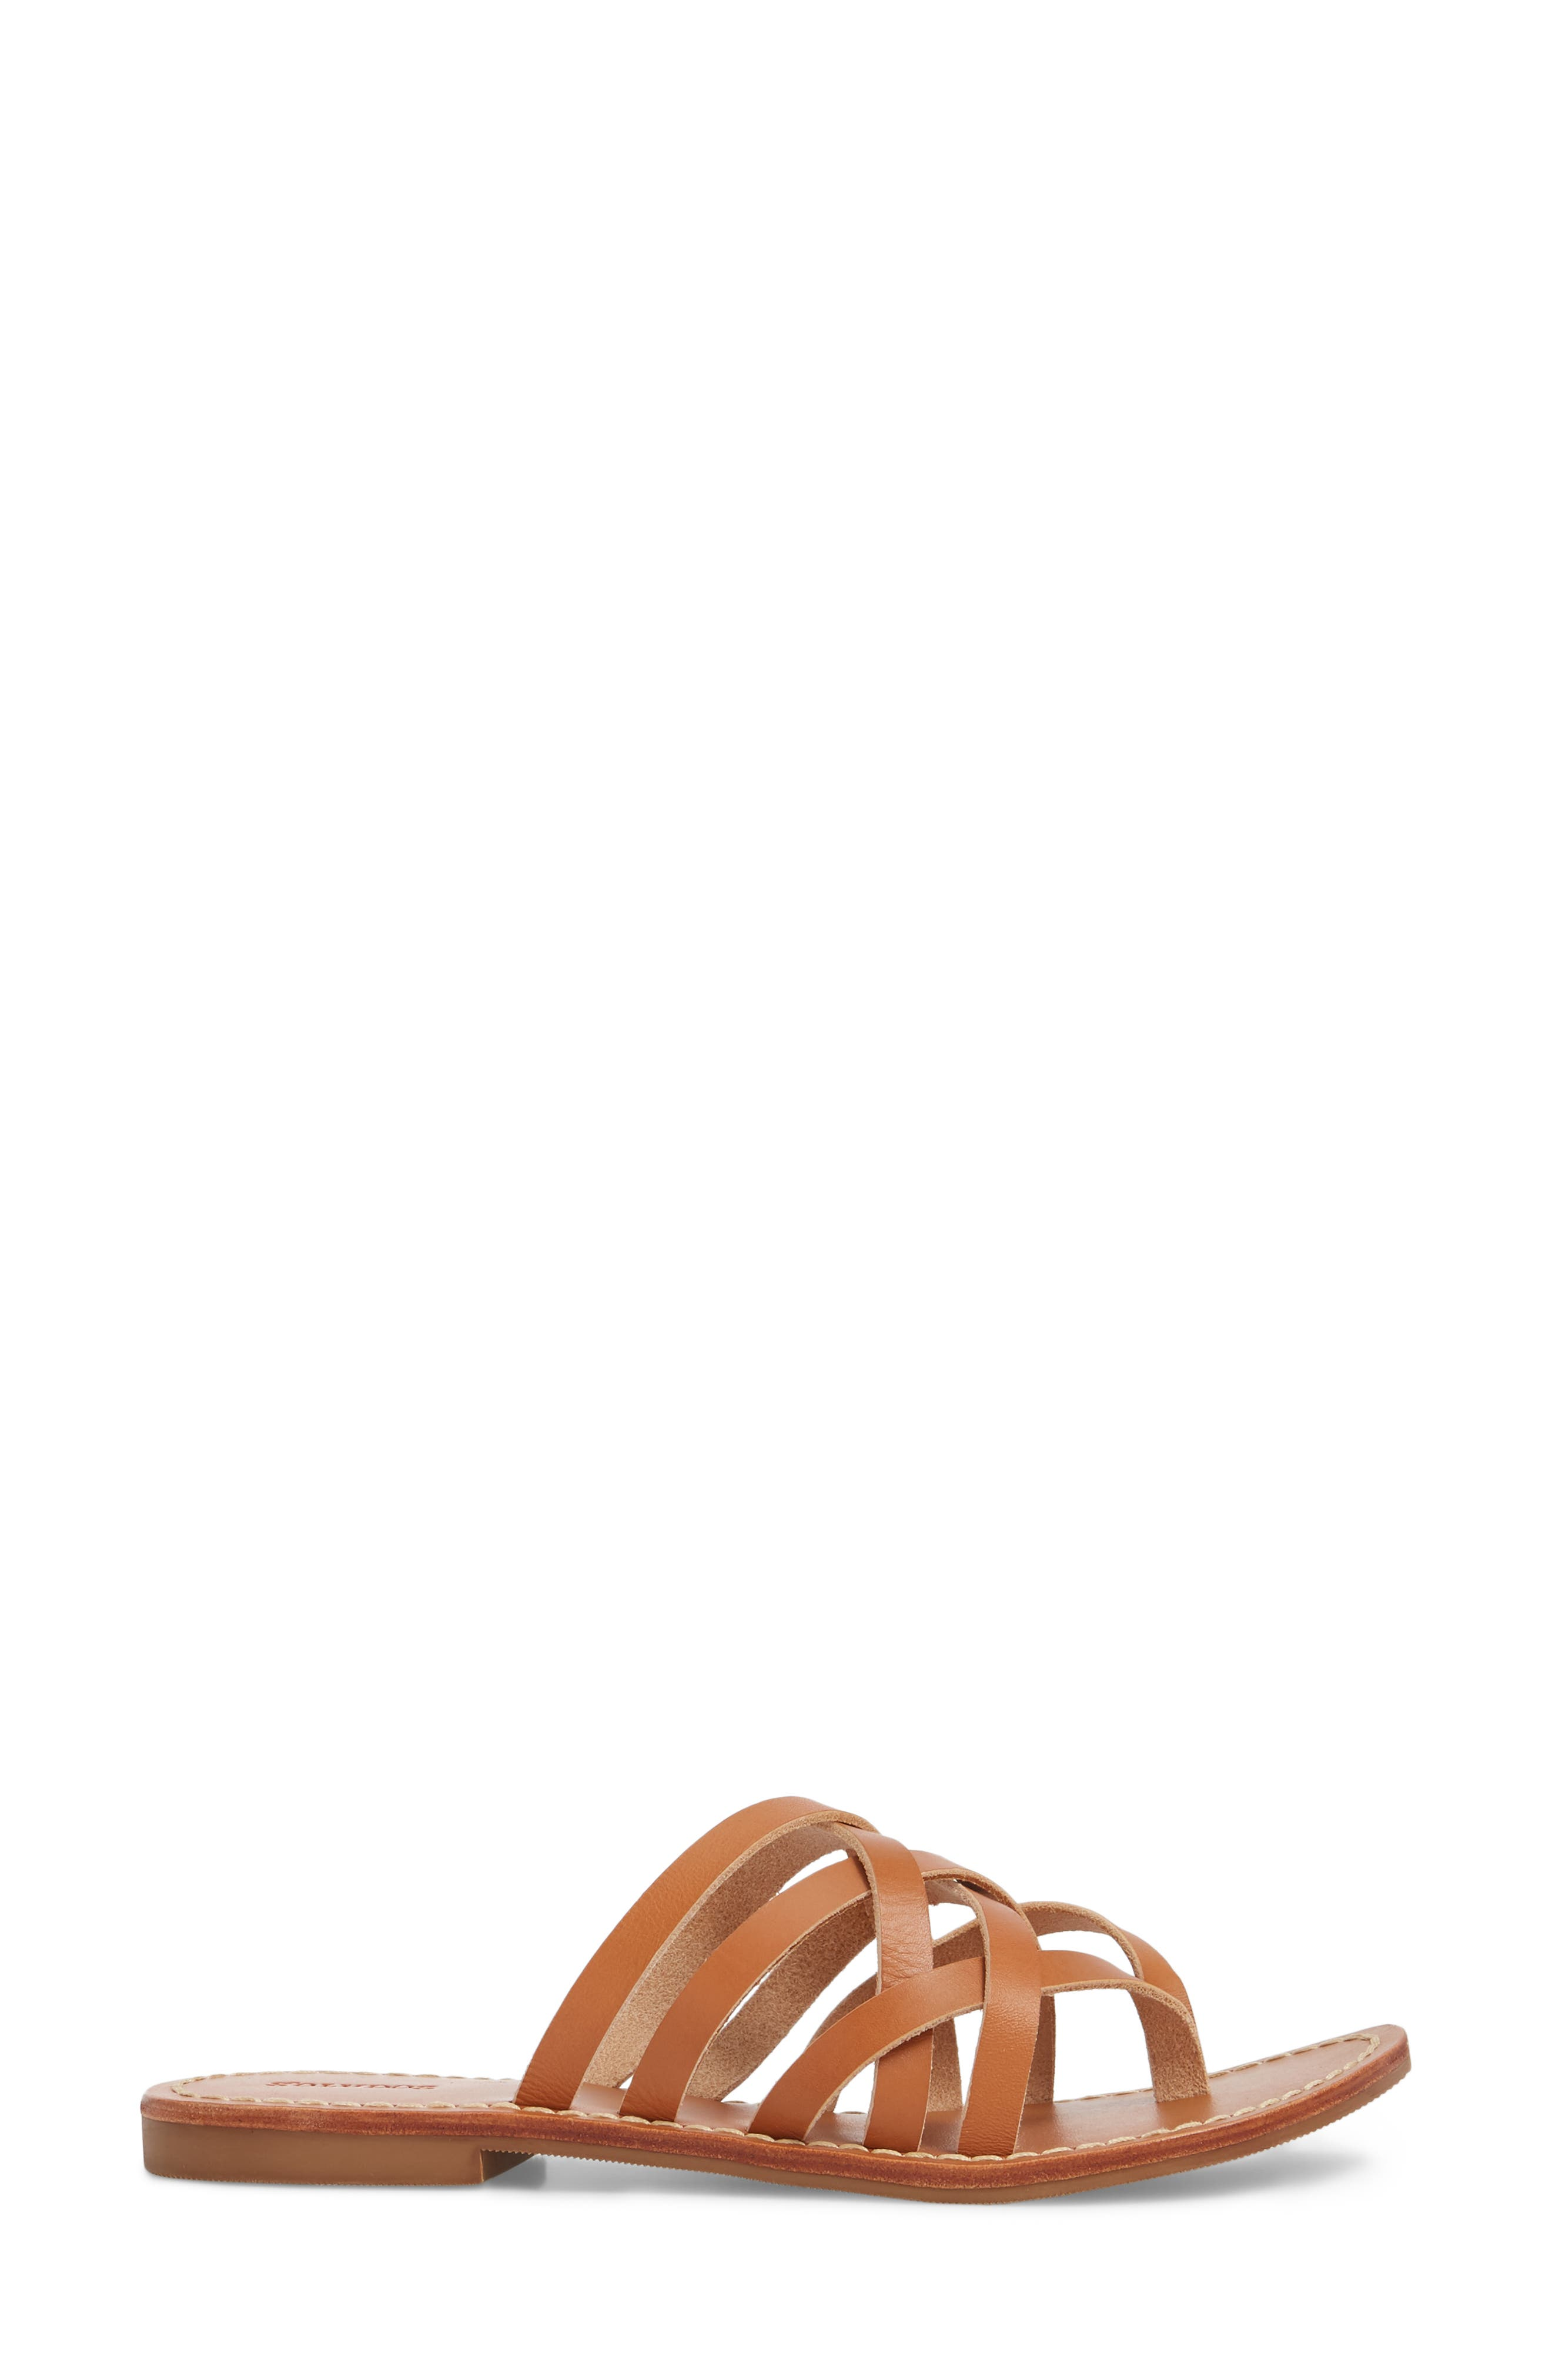 Strappy Sandal,                             Alternate thumbnail 3, color,                             Natural Leather